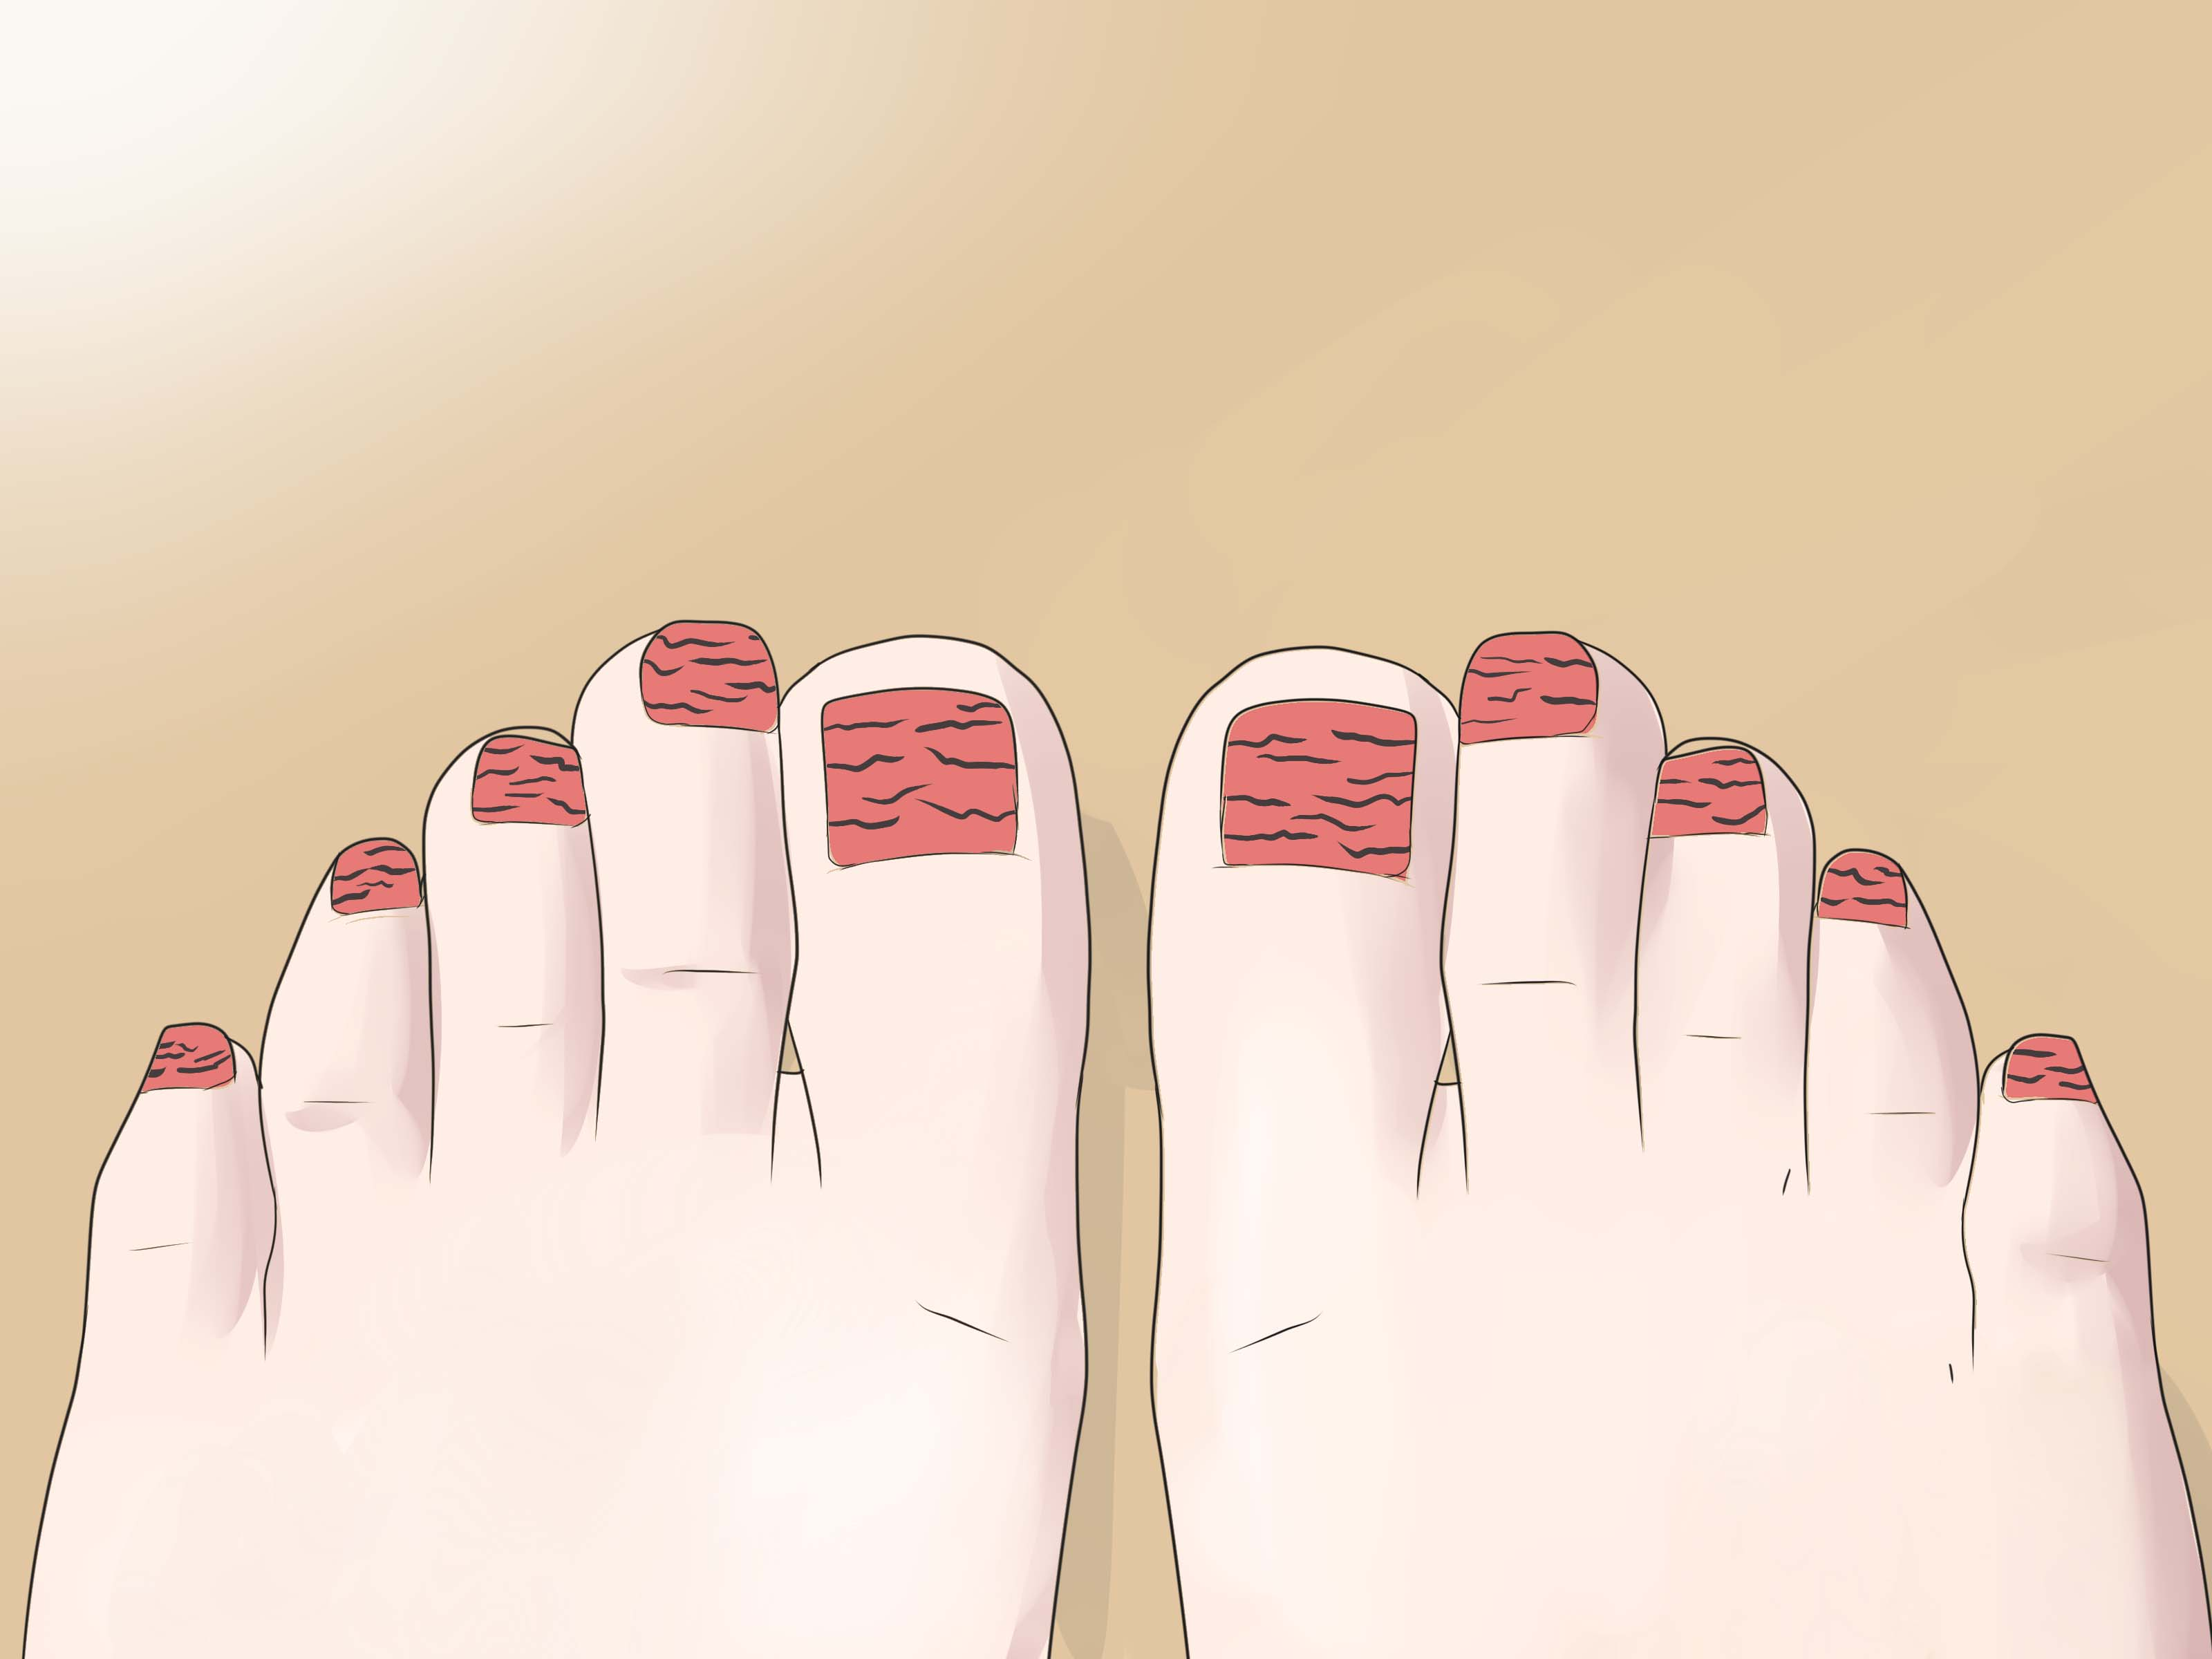 Pedicure Salon How To Perform A Professional Salon Pedicure With Pictures